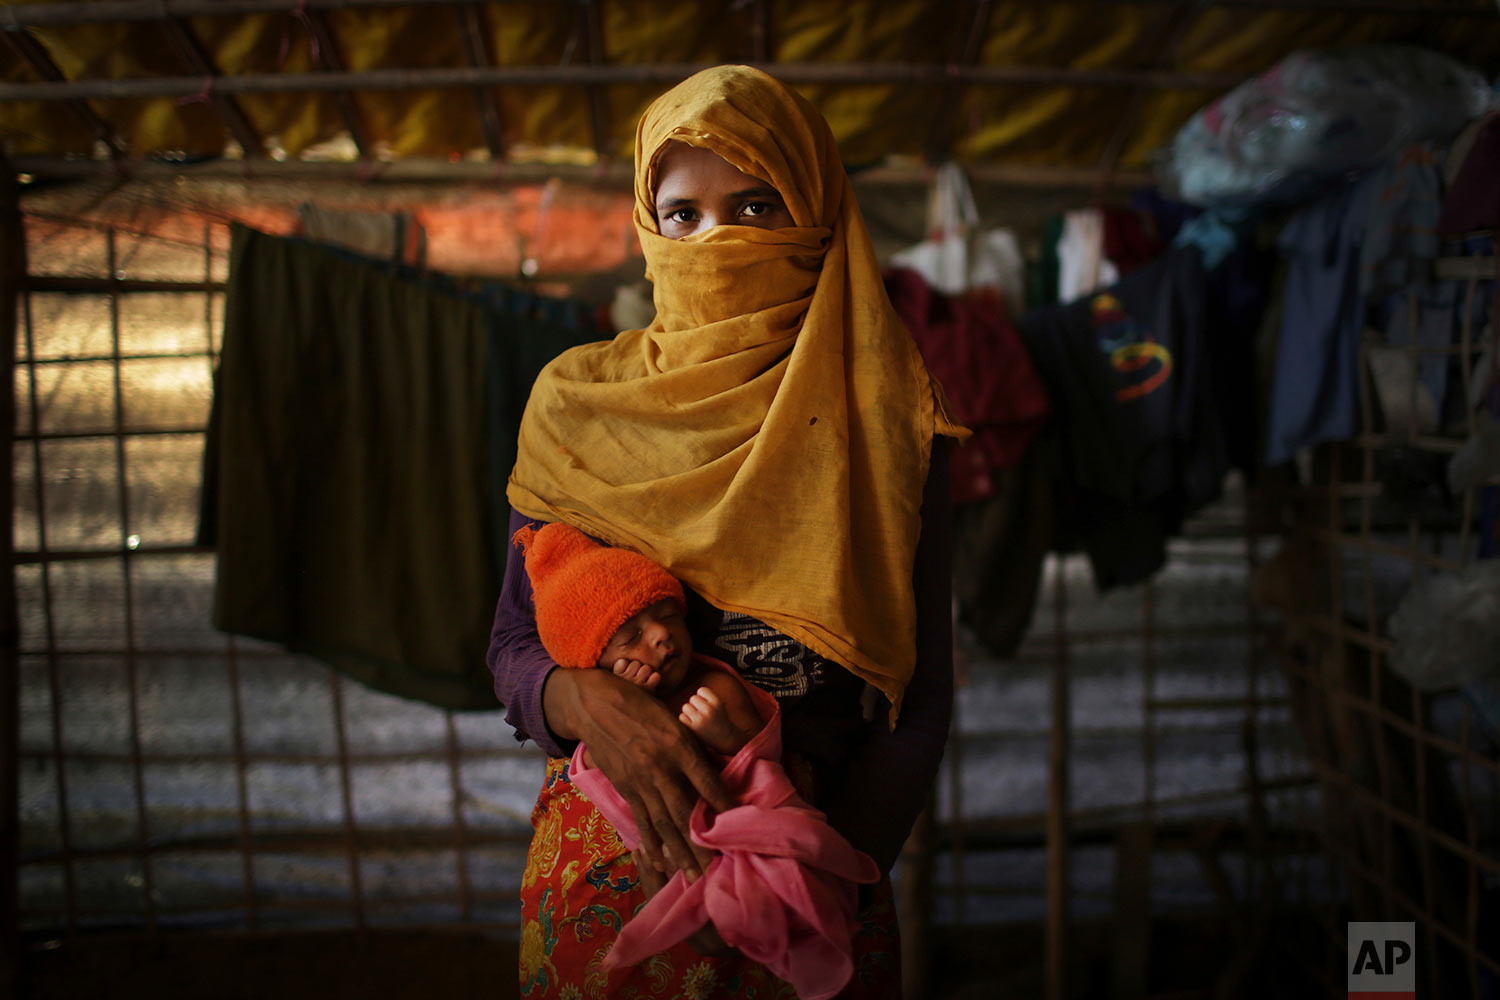 In this Monday, Nov. 20, 2017, photo, K, 30, mother of six who's 3-year-old daughter was killed, who says she was raped by members of Myanmar's armed forces in late August, carries her baby born two months premature, is photographed in her tent in Kutupalong refugee camp in Bangladesh.  (AP Photo/Wong Maye-E)